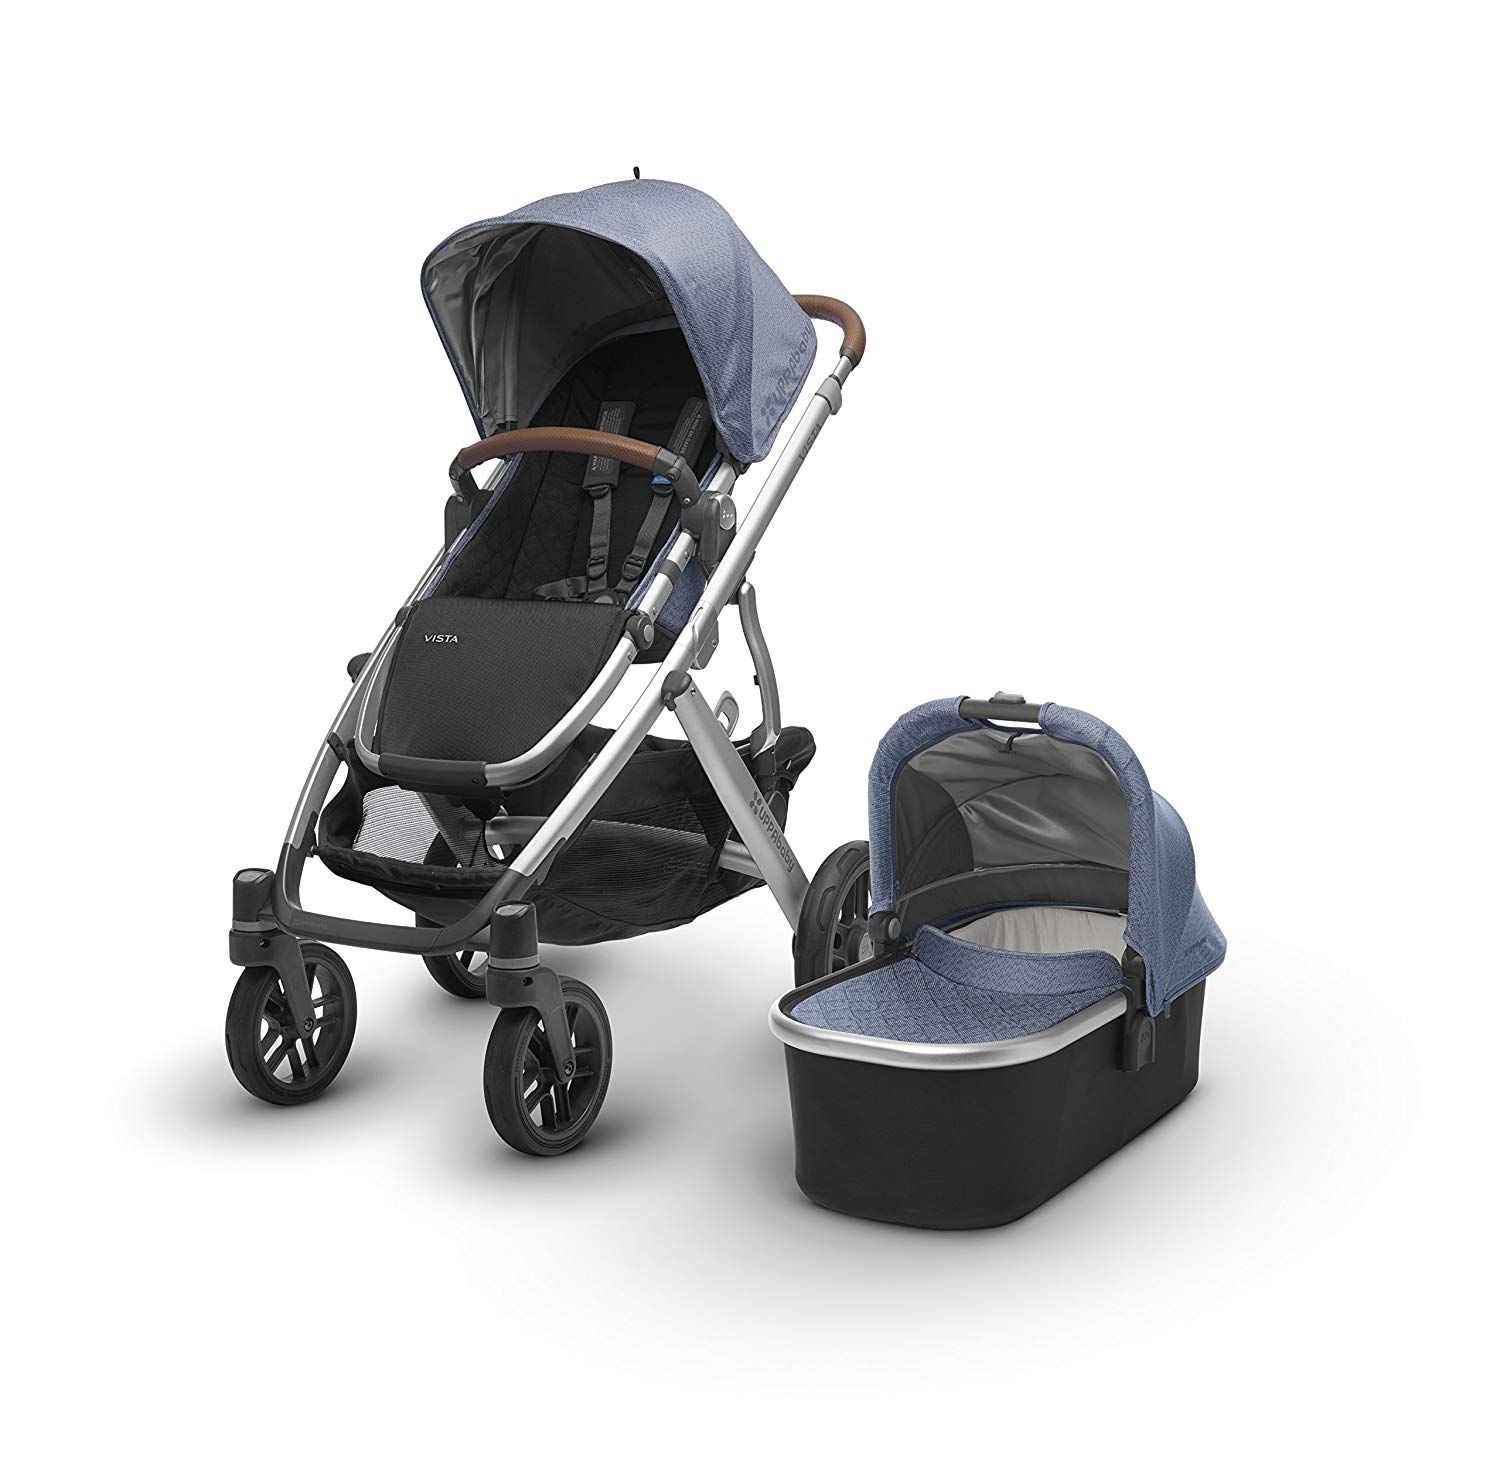 NEW! 2018 model VISTA Stroller. Includes and full size